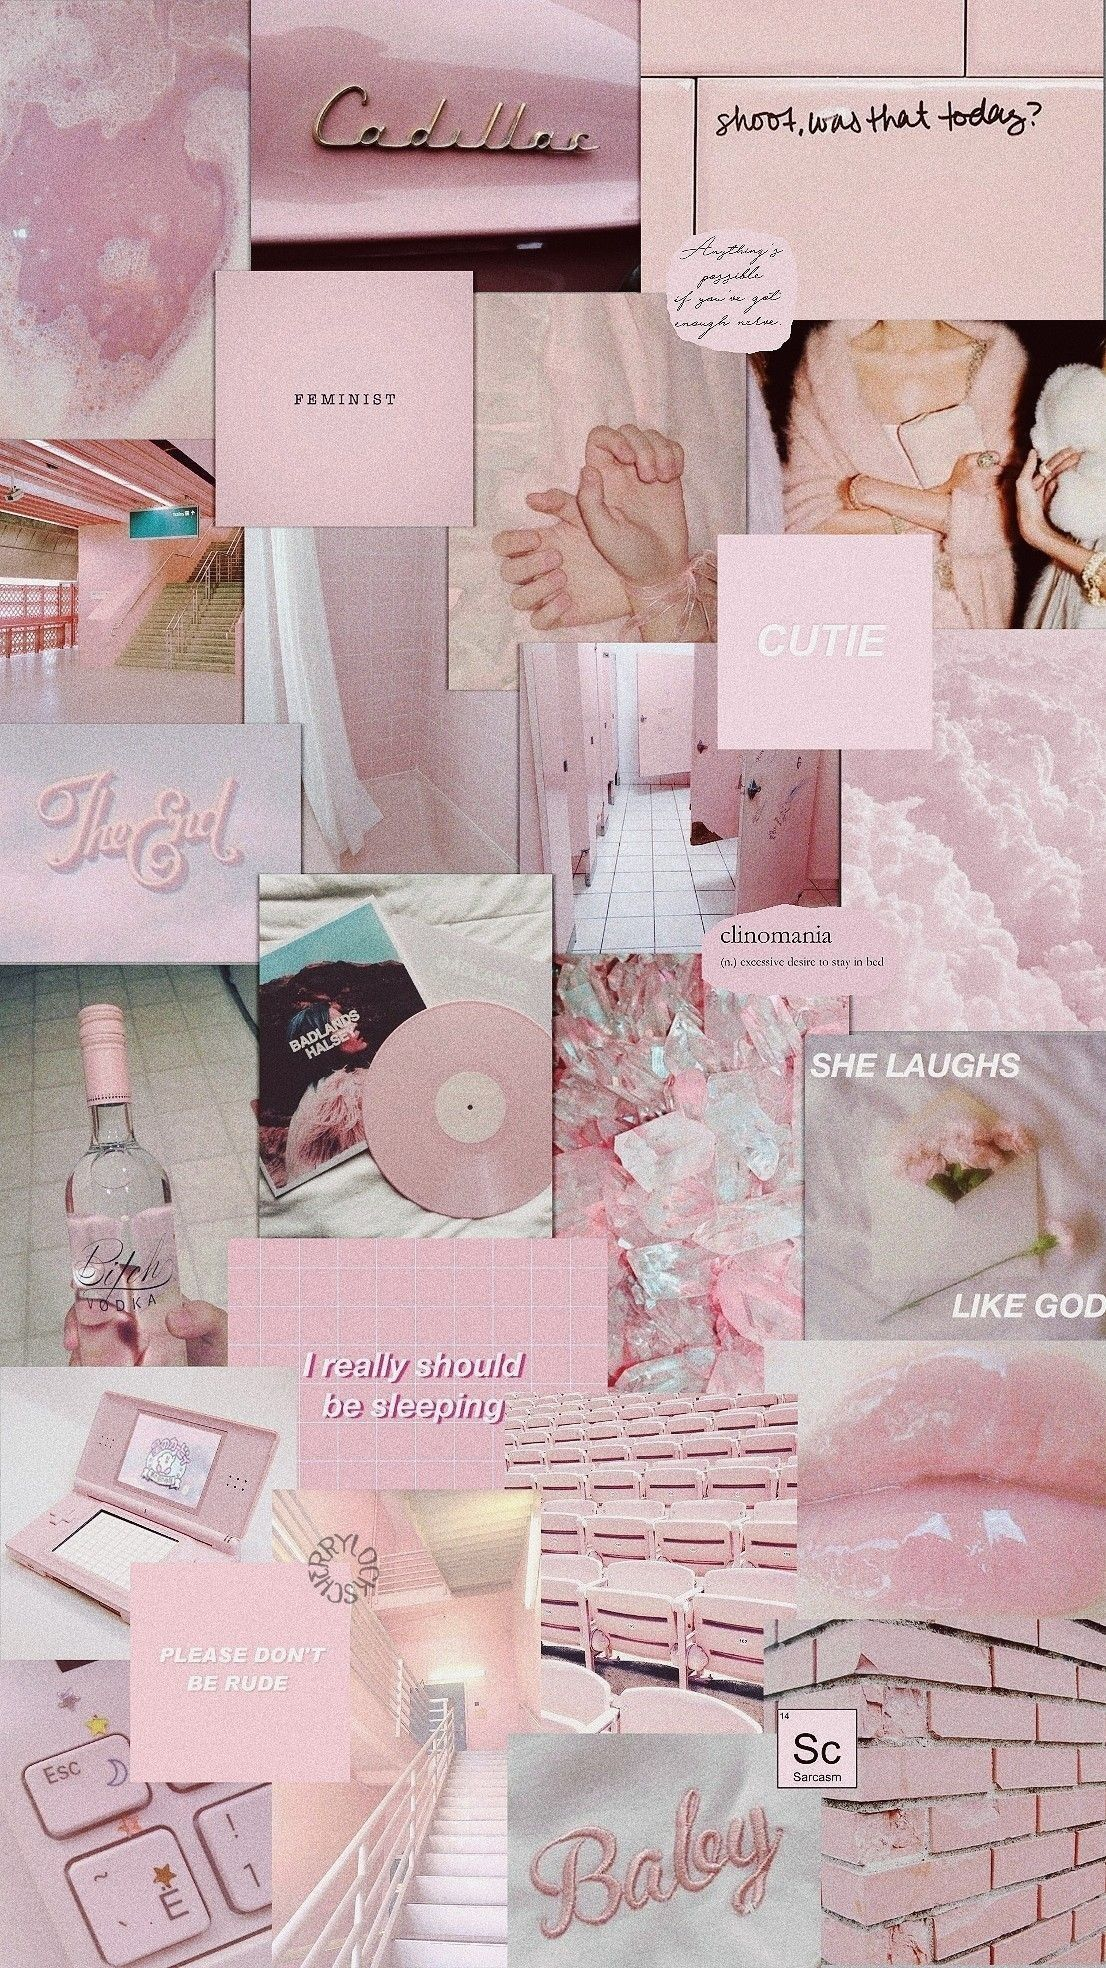 pinterest florxmoonlight ♡ (With images) Pastel pink